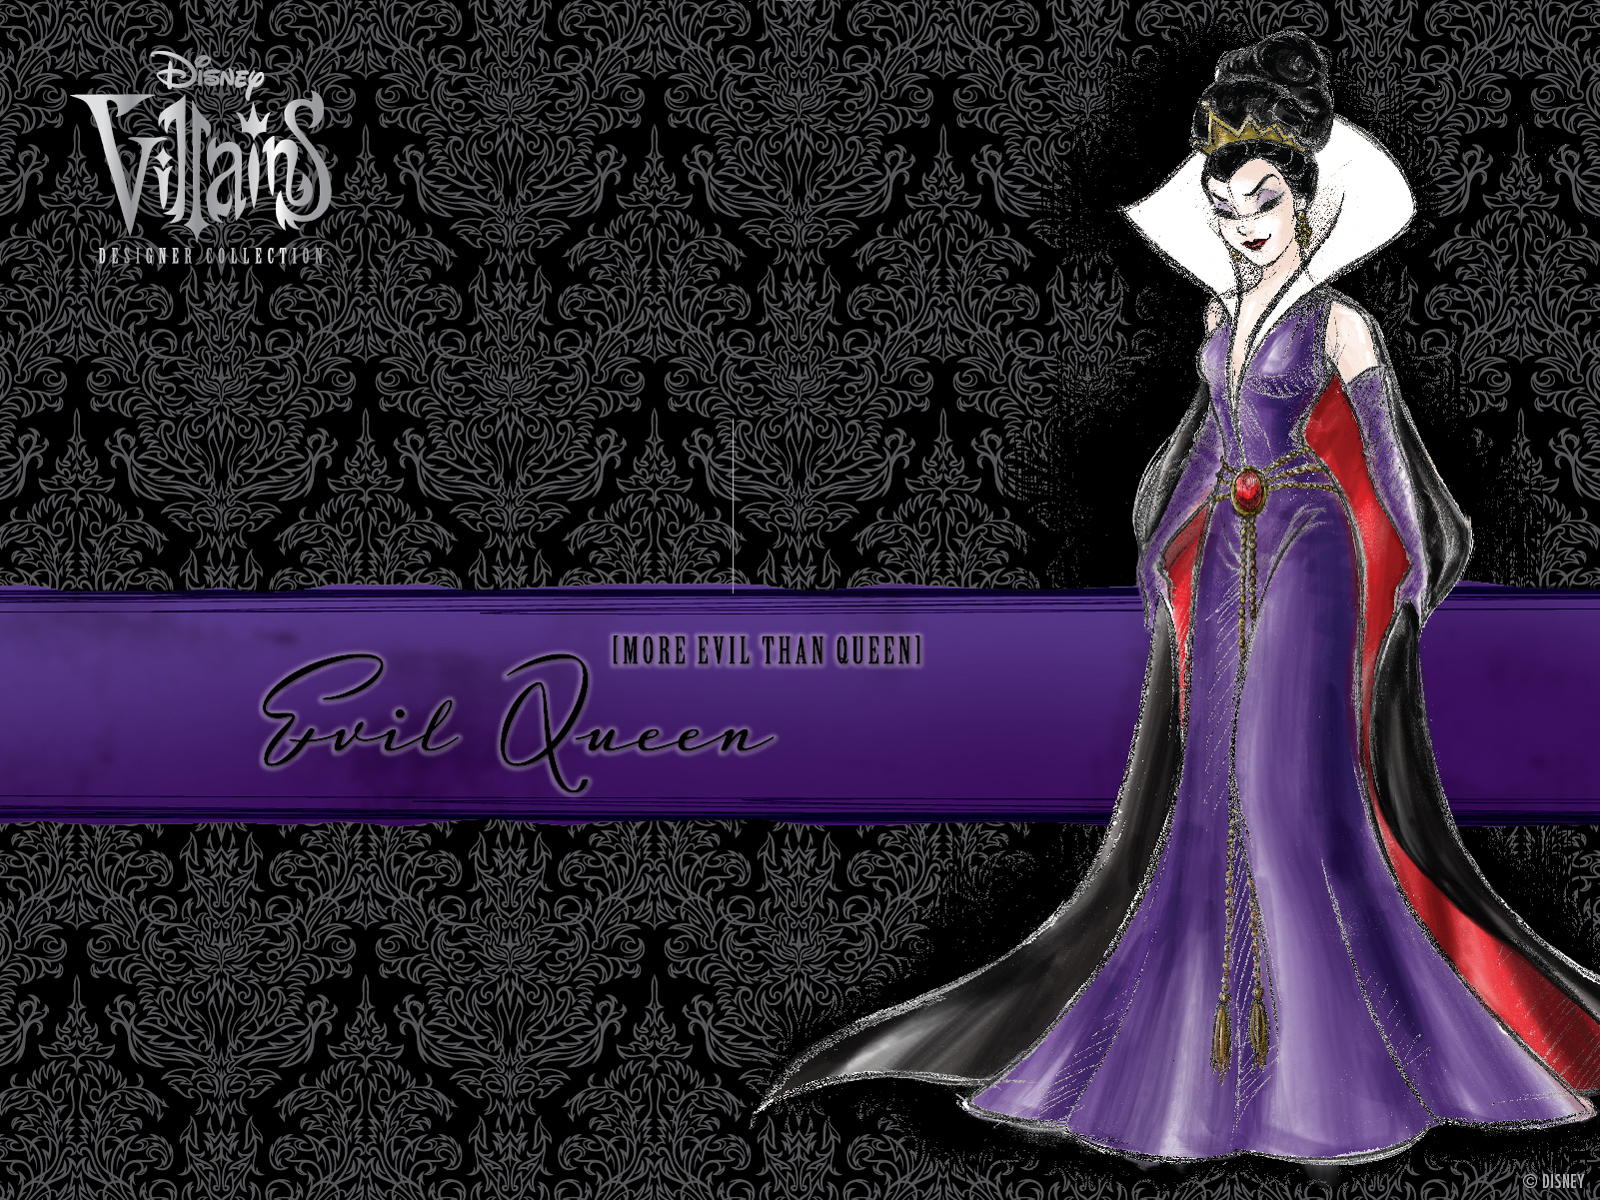 filmic light - snow white archive: villains designer collection